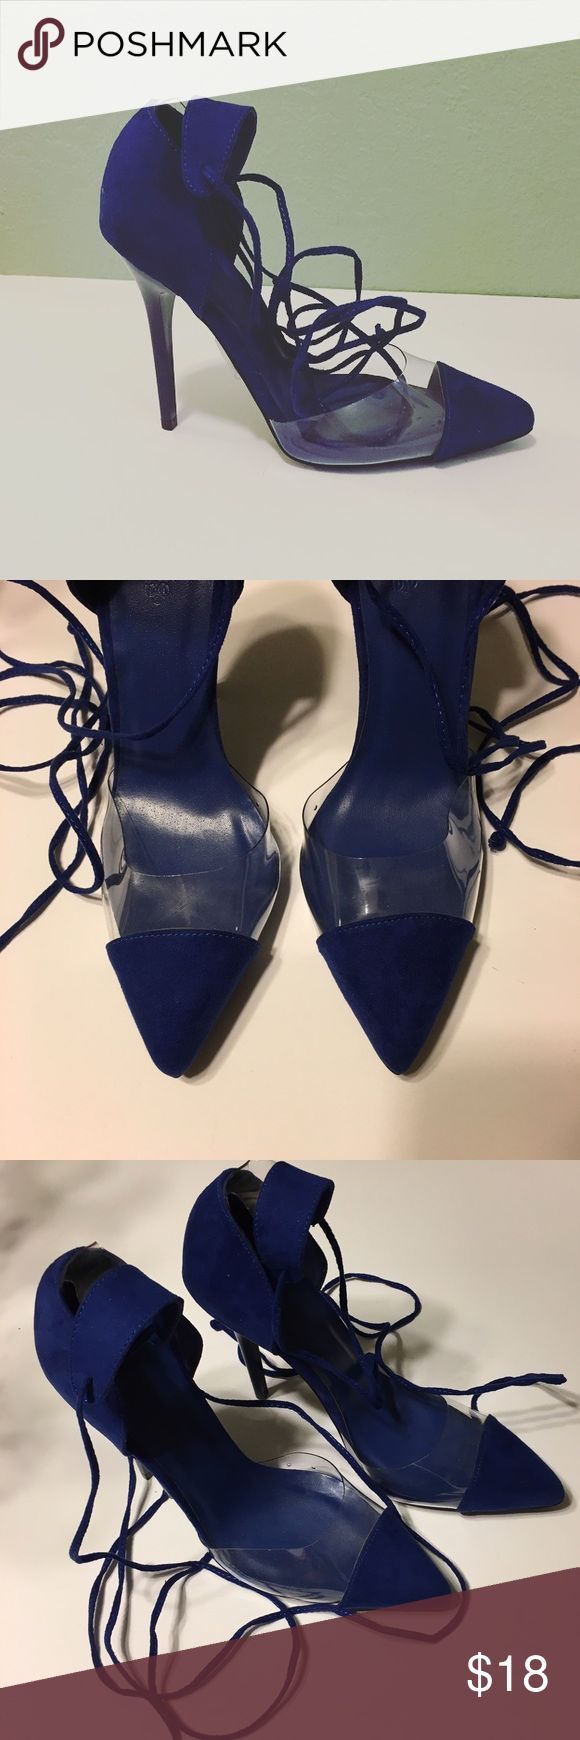 "Charlotte Russe Blue Lace Up Heels Charlotte Russe Blue Lace Up Heels ~ Size 8 ~ These are new without tags. ~ Lace Up Around The Ankle ~ 4"" heel Charlotte Russe Shoes Heels"